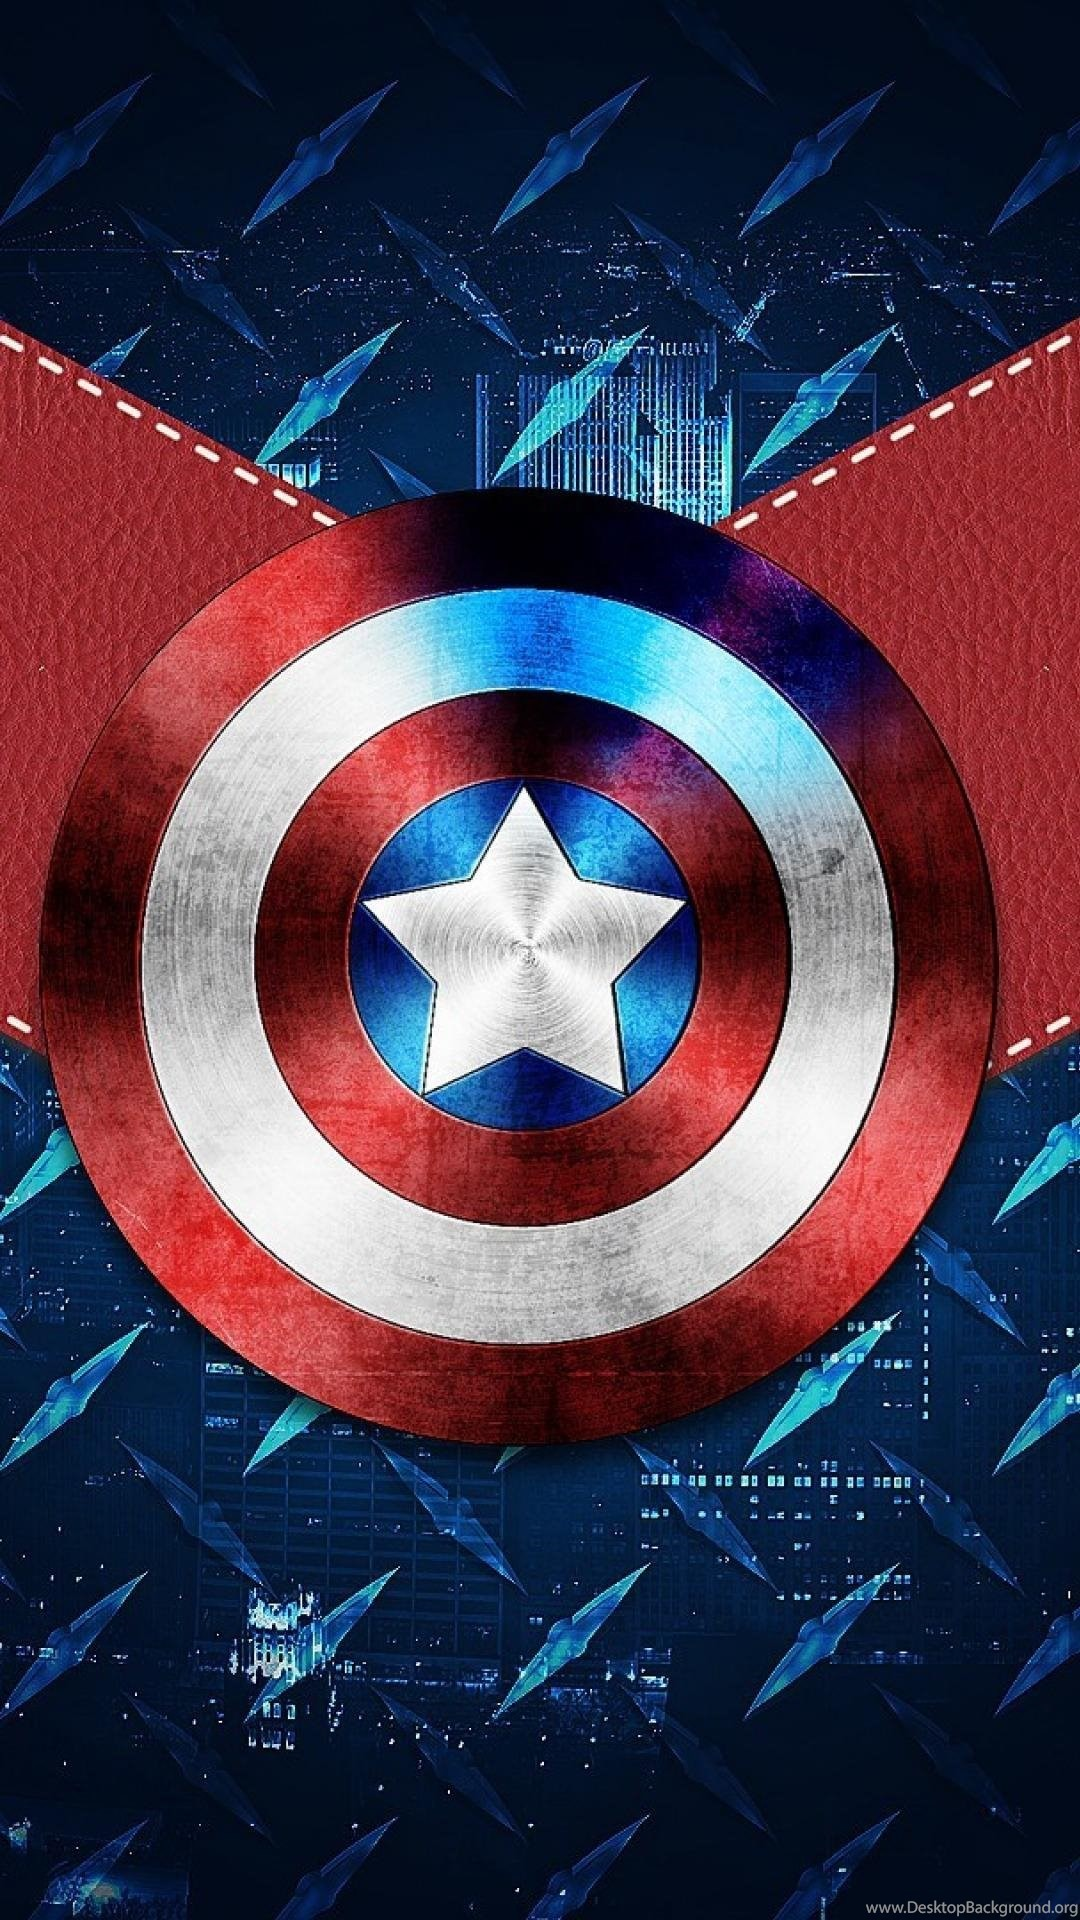 Captain america shield wallpapers 69 images - Captain america hd mobile wallpaper ...